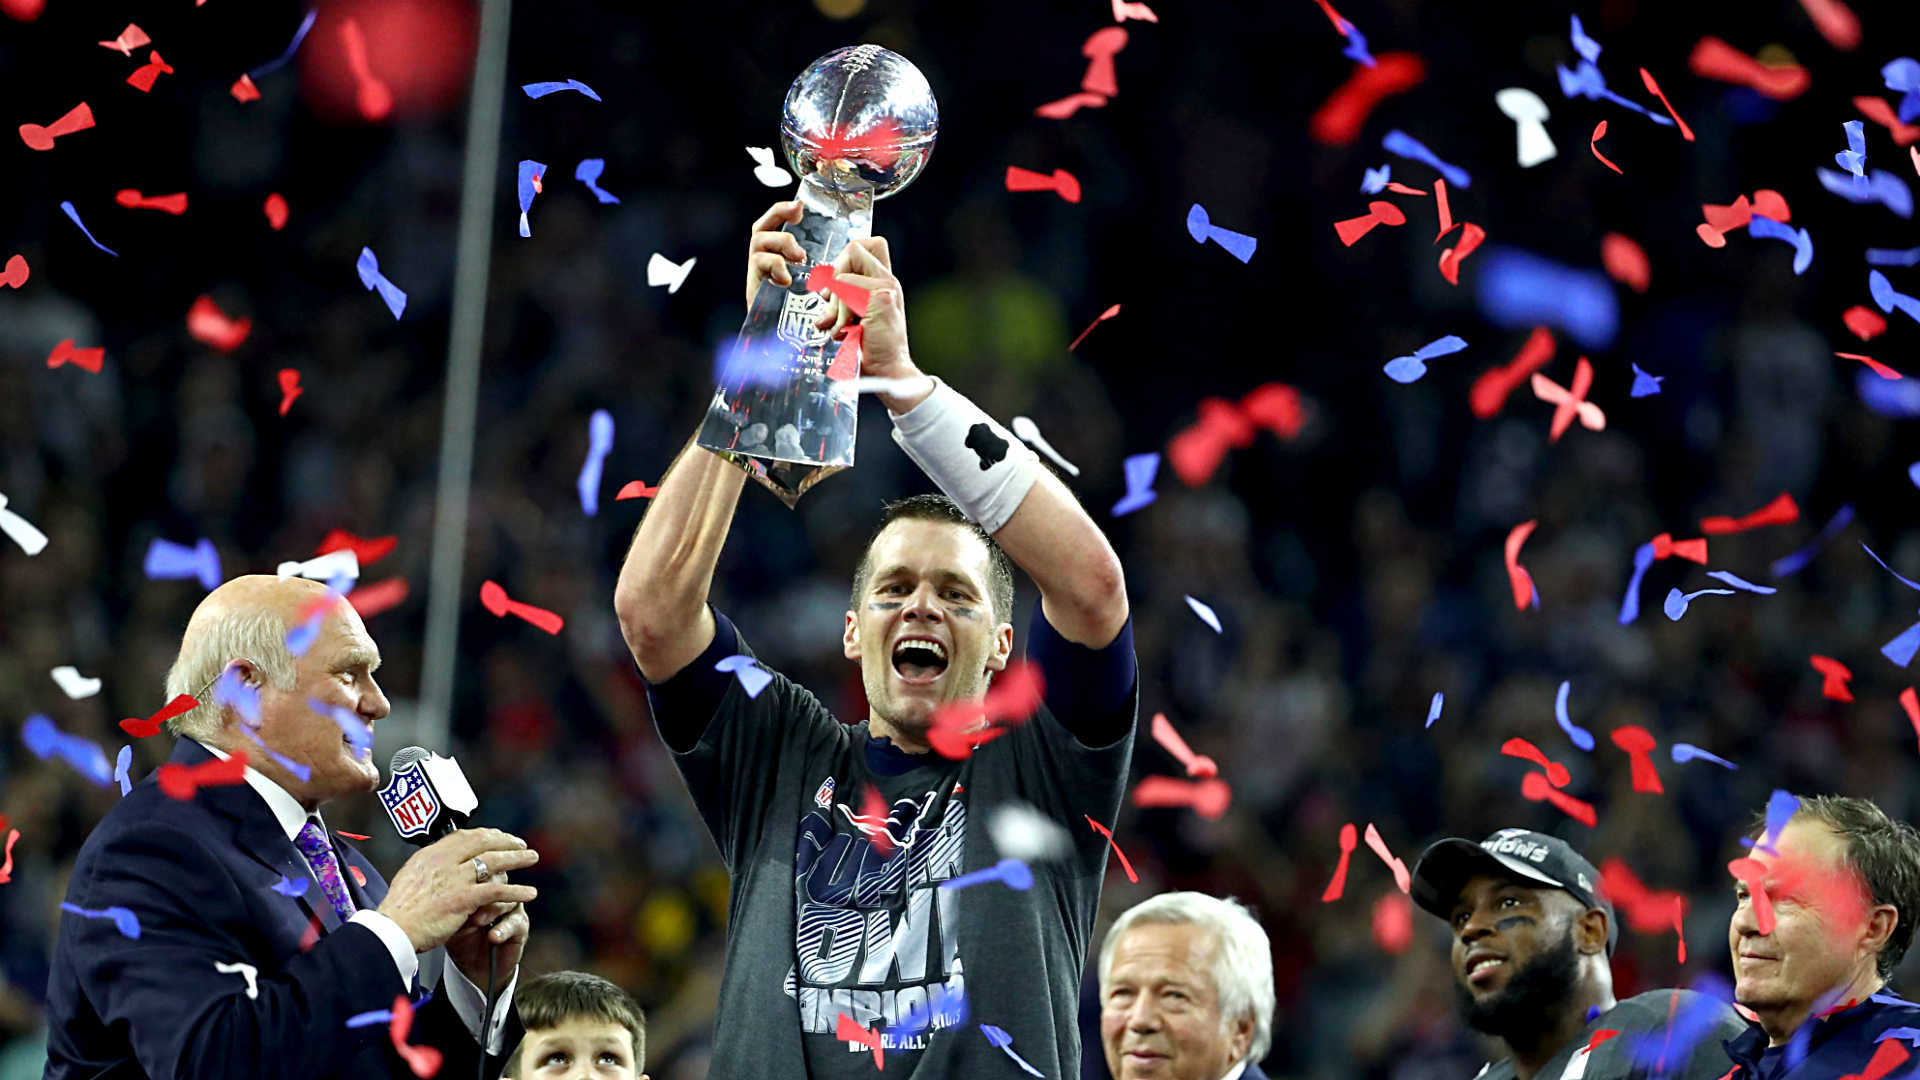 Super Bowl MVP winners: Who has won the award most in NFL history?